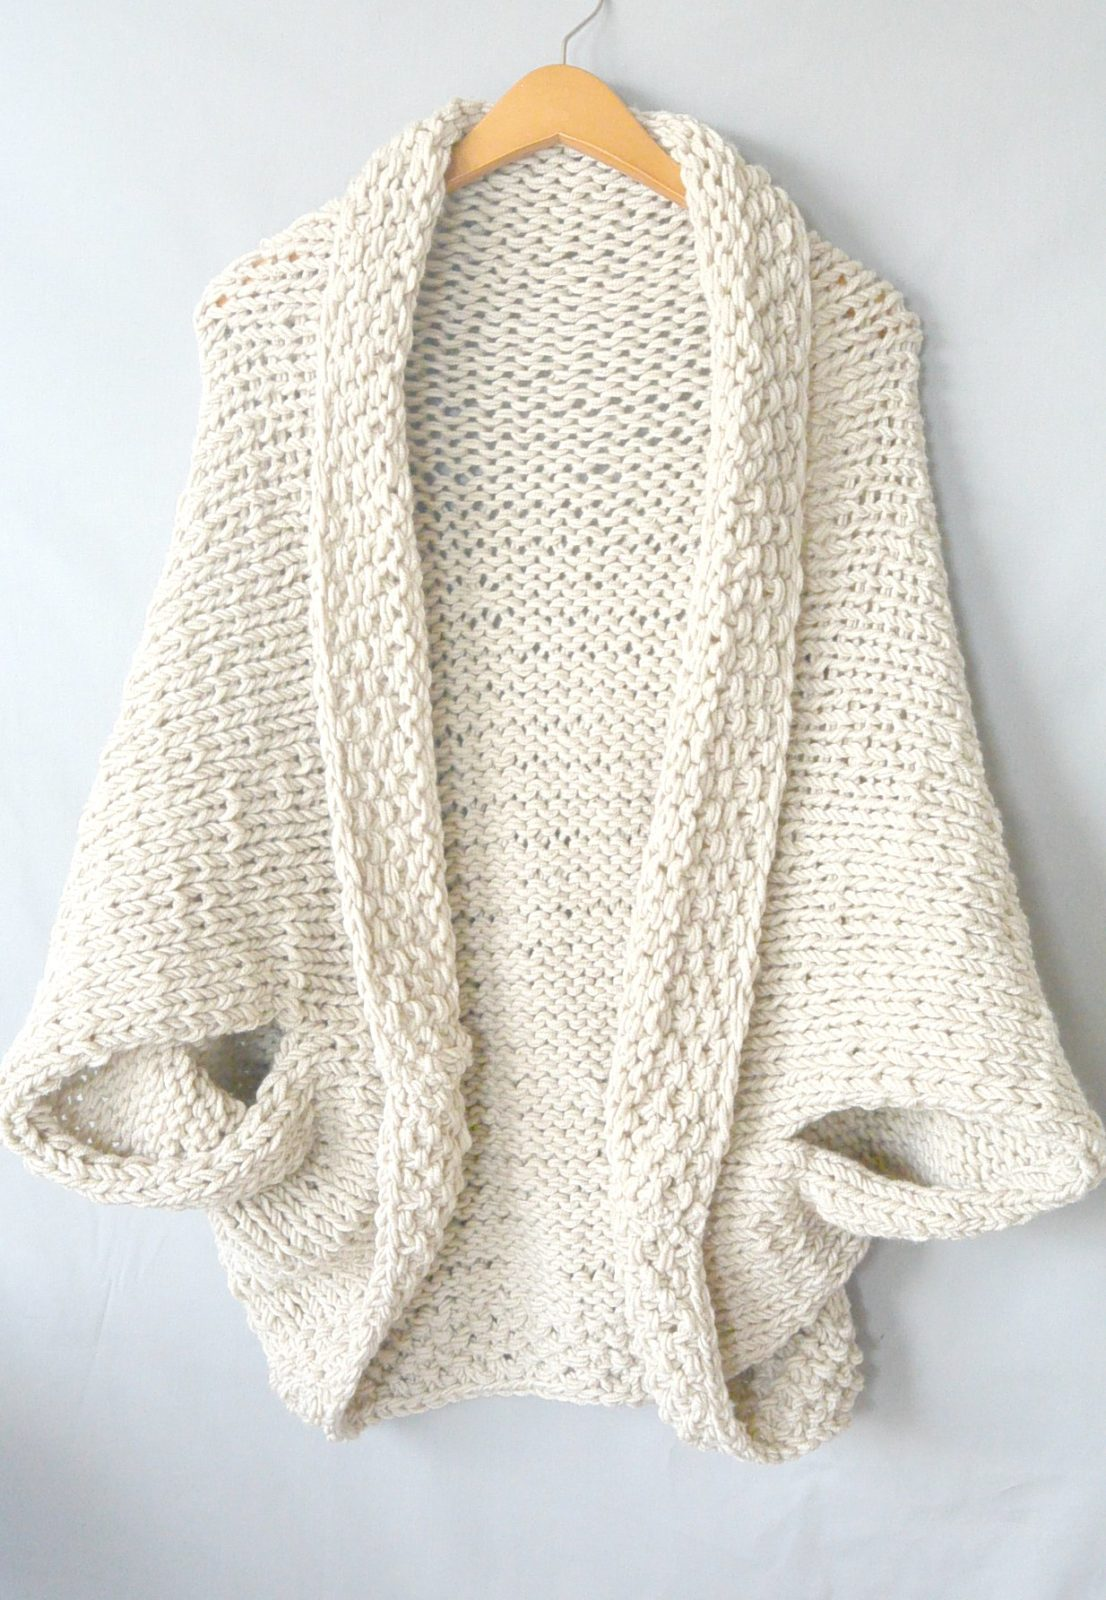 Free Japanese Knitting Patterns English : Easy Knit Blanket Sweater Pattern   Mama In A Stitch